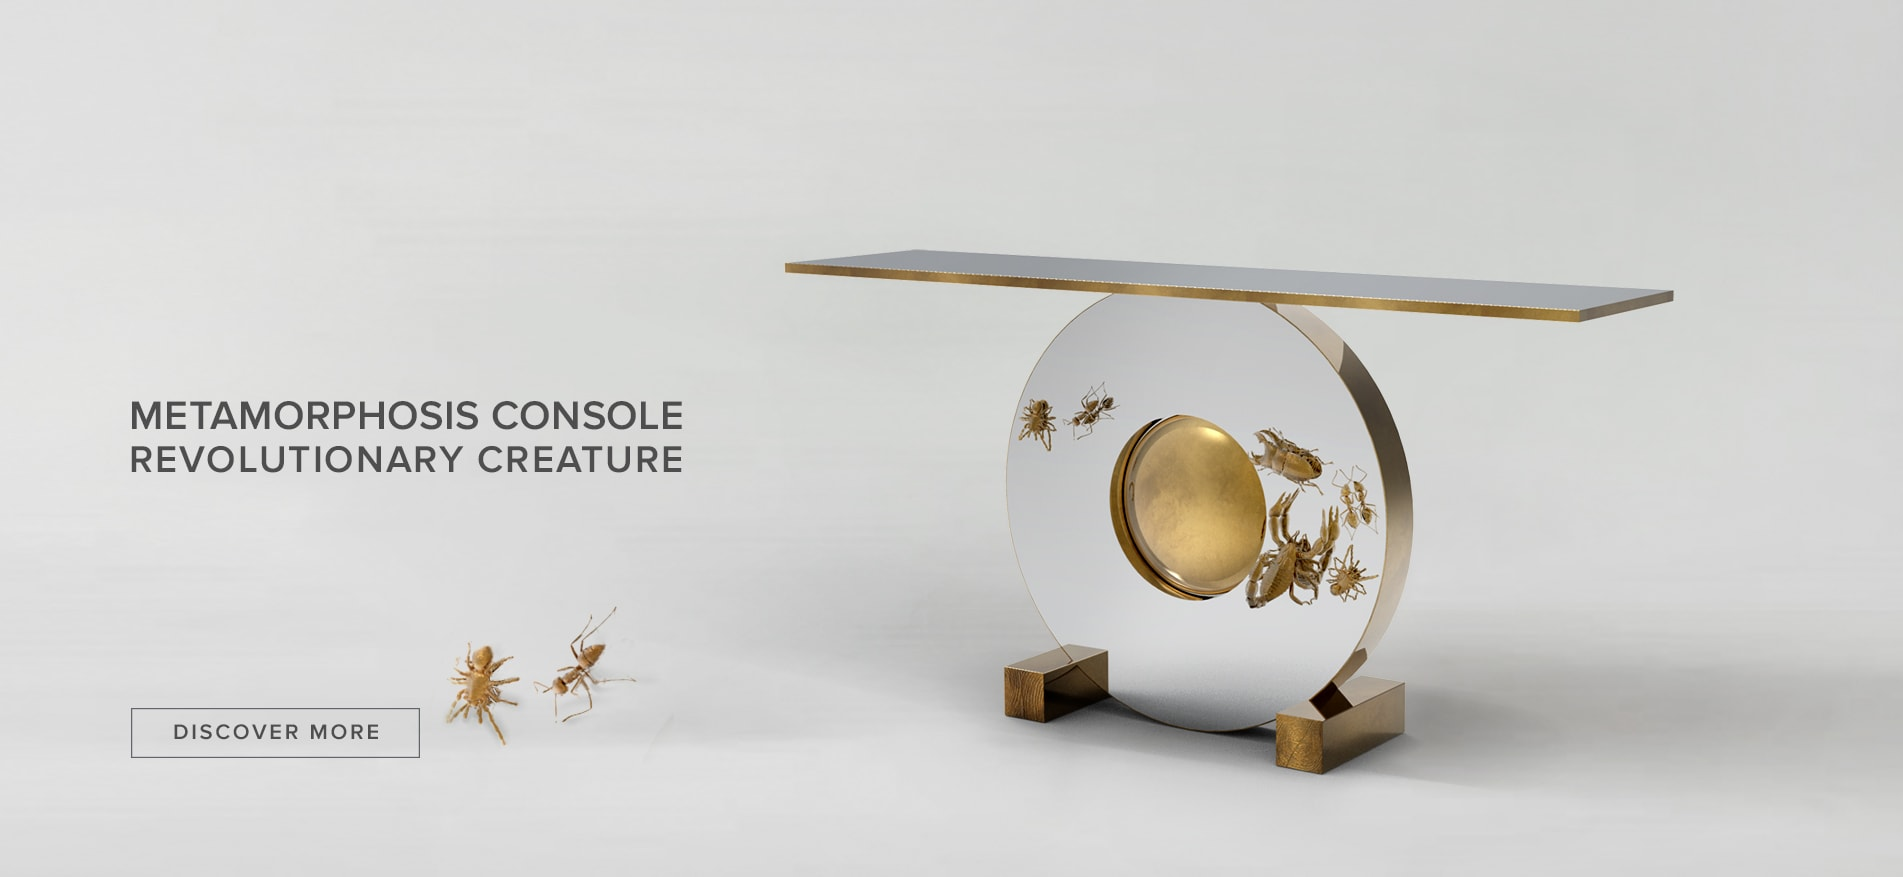 Metamorphosis Console by Boca do Lobo